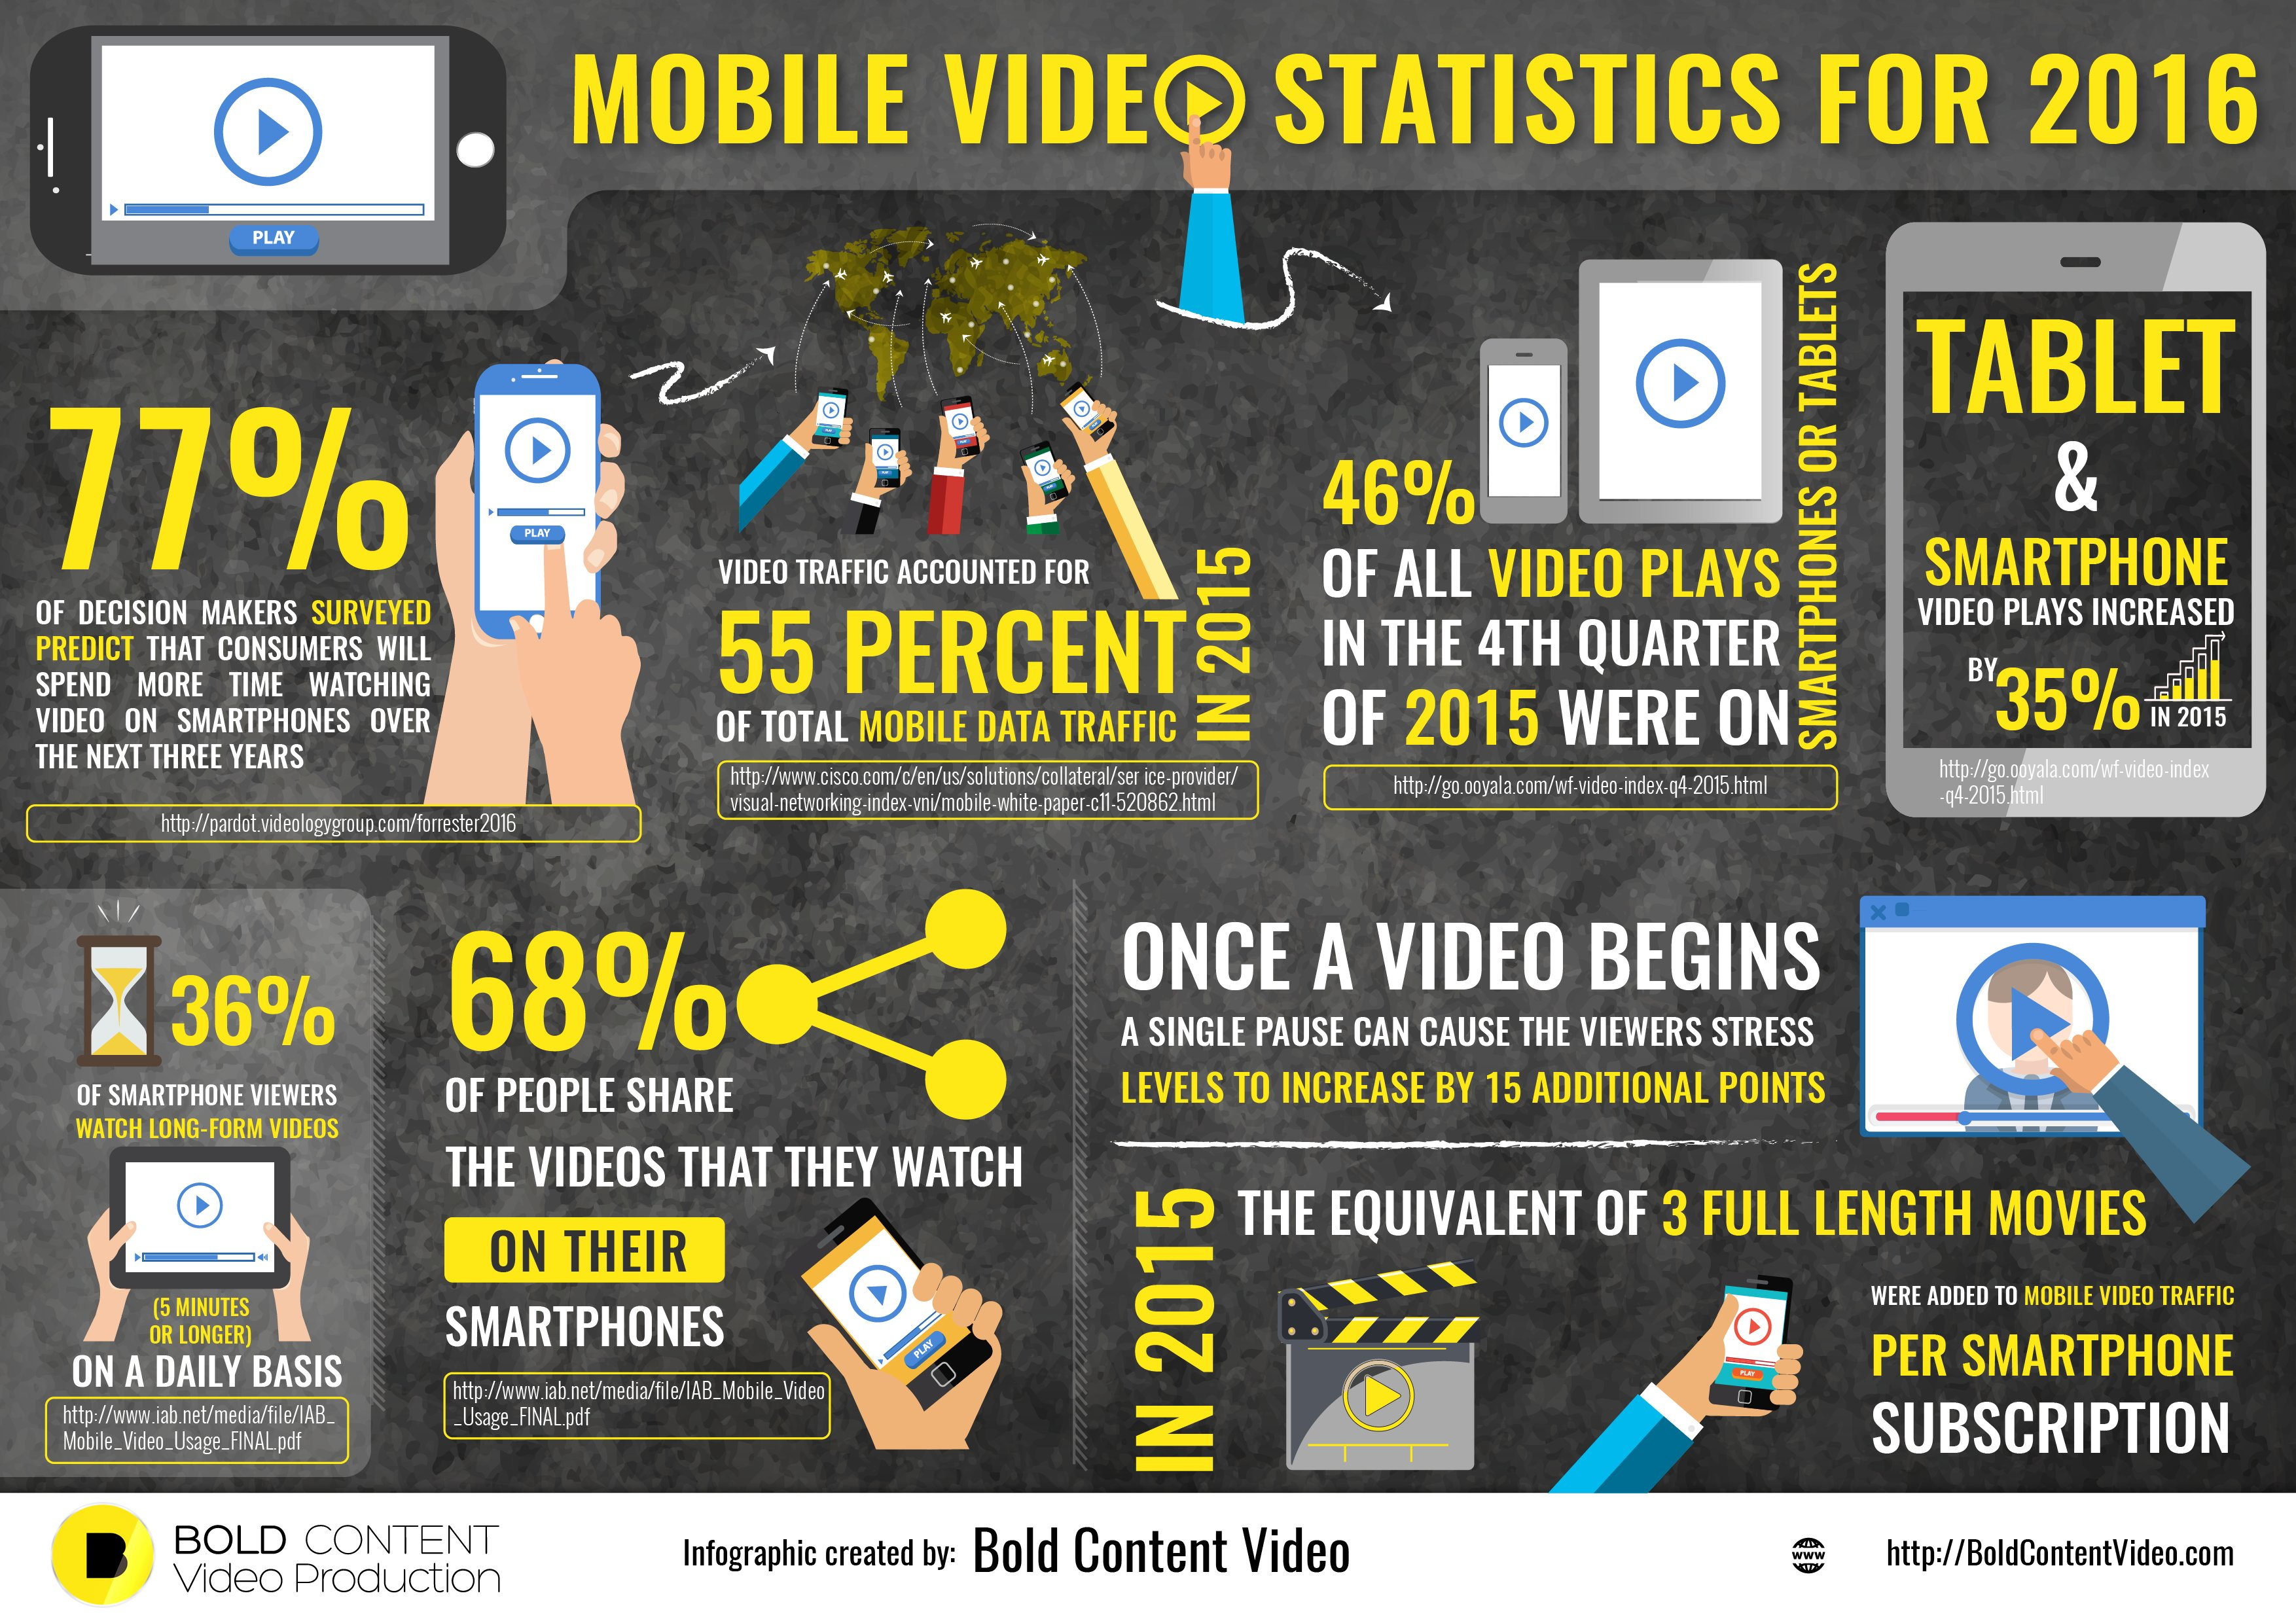 Mobile Video Statistics For 2016 + INFOGRAPHIC